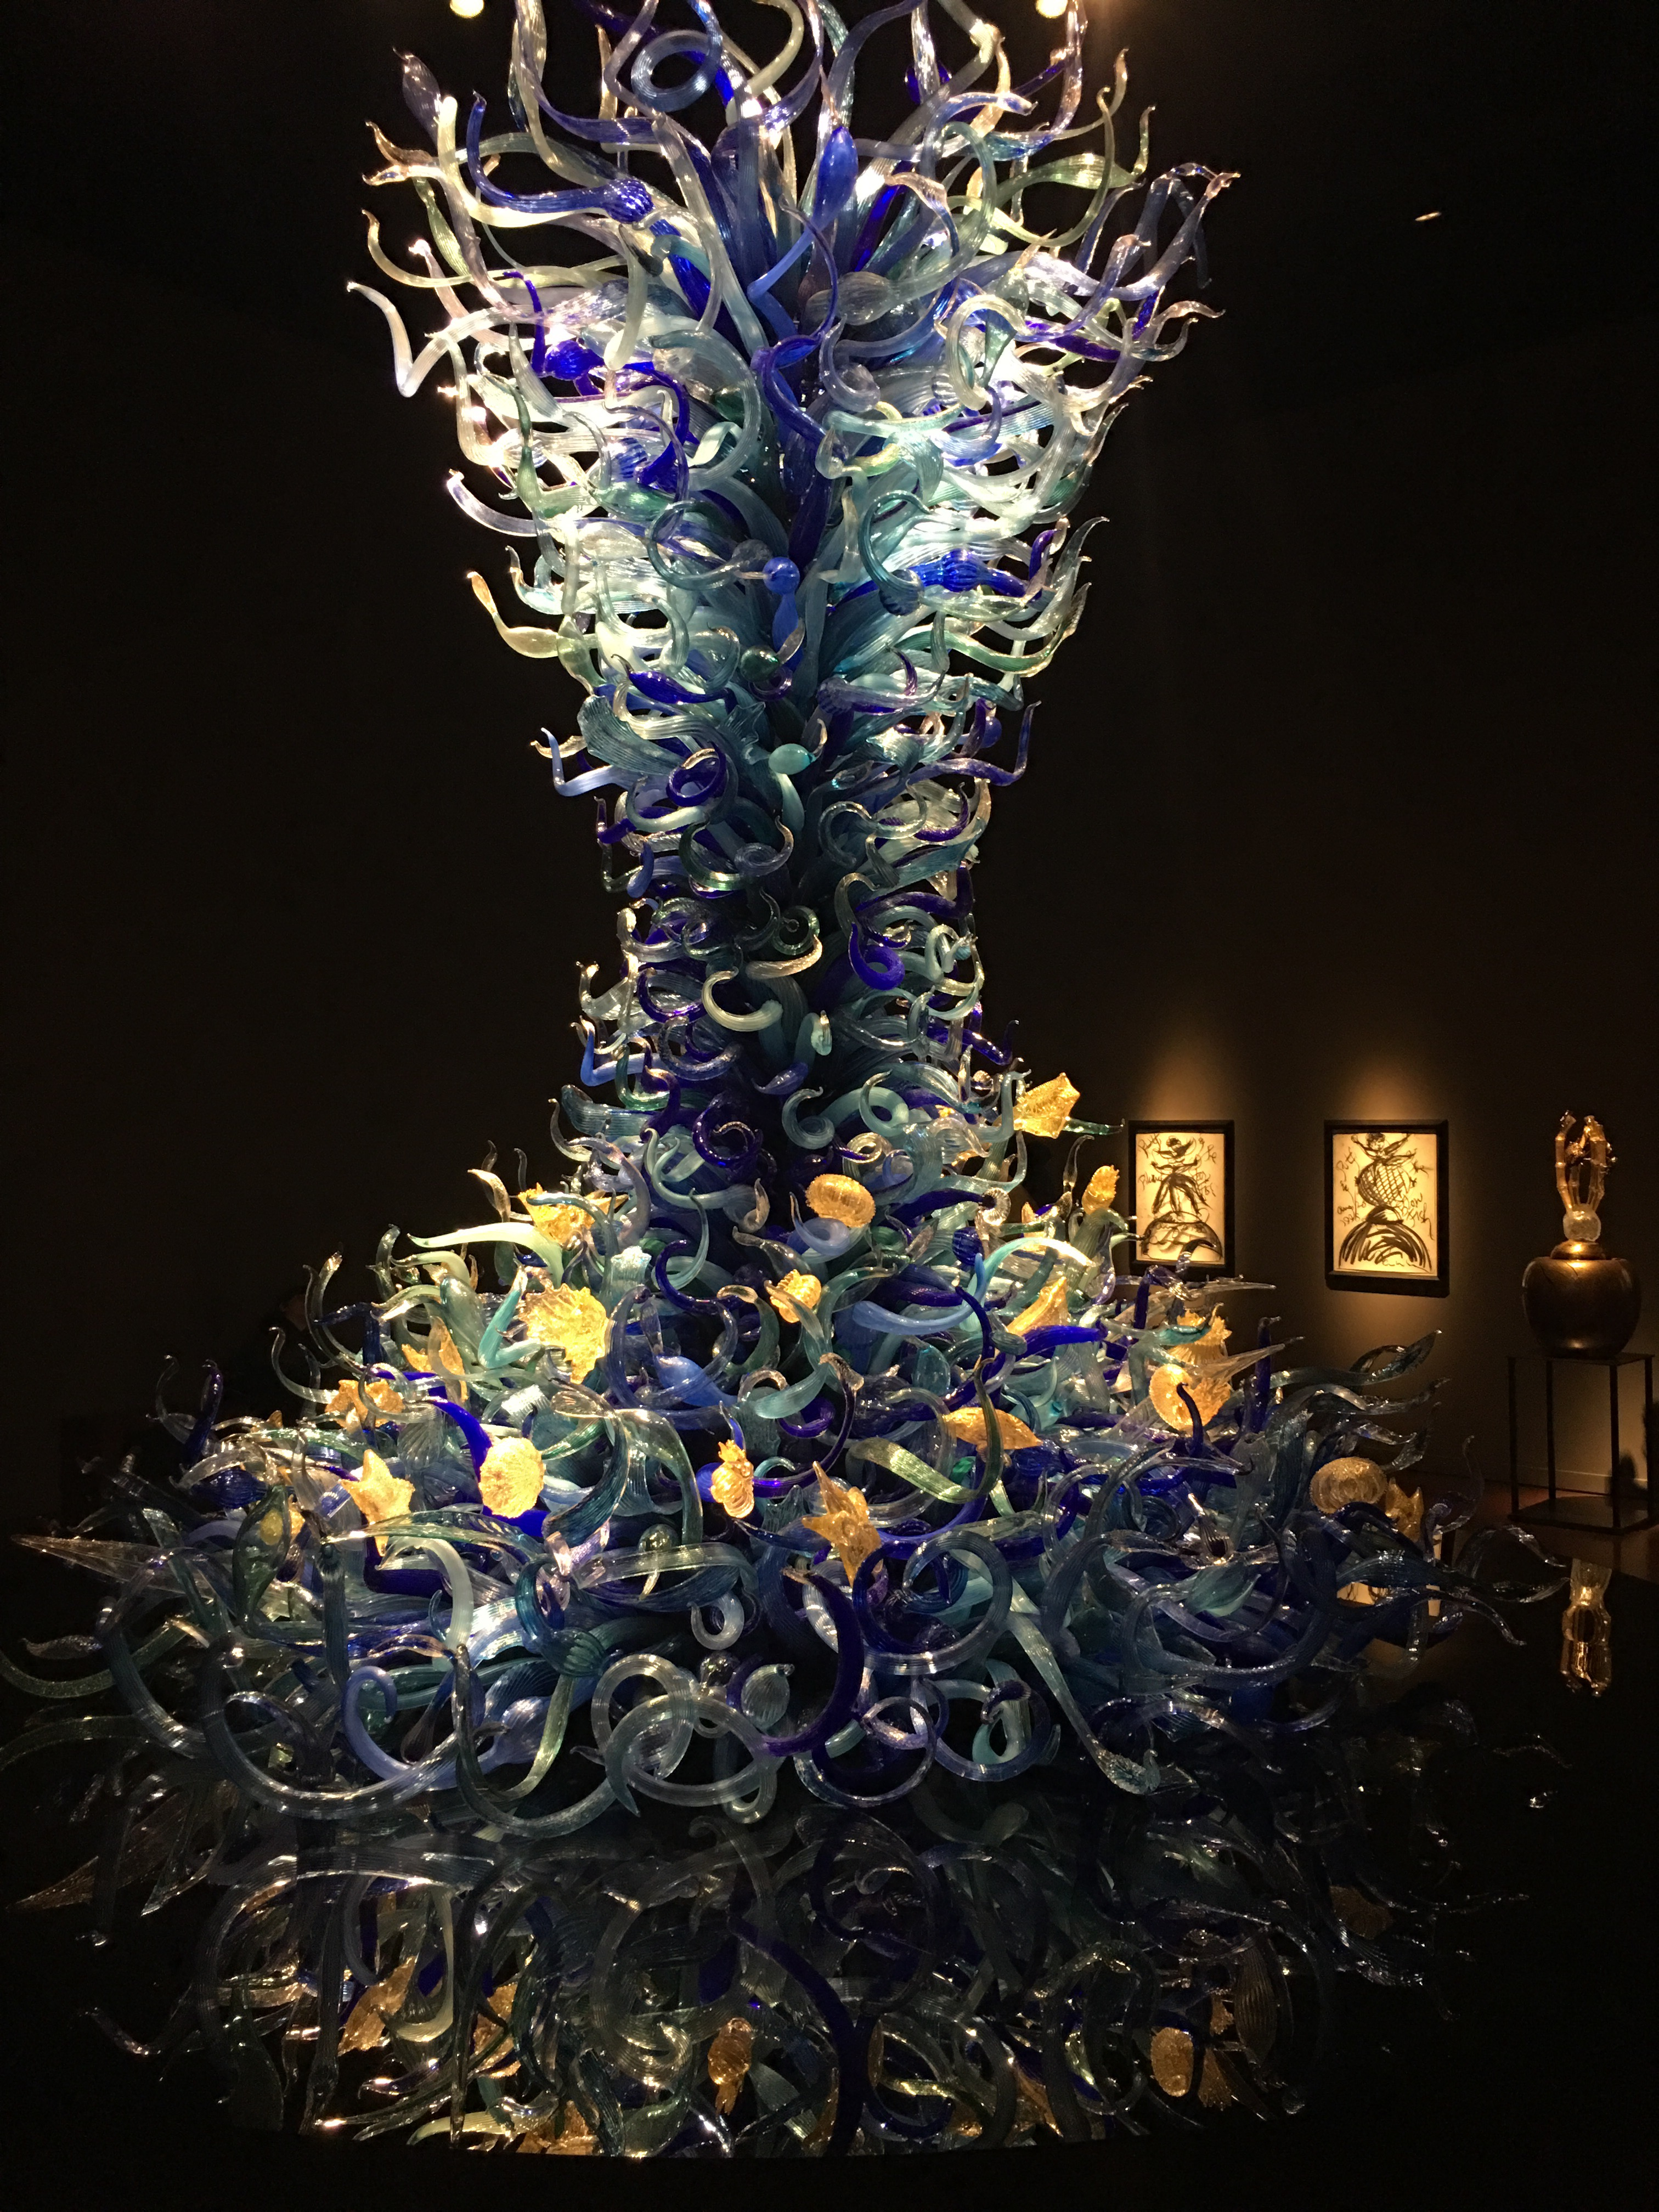 A huge tower of tangled blue glass from the Sealife exhibit.